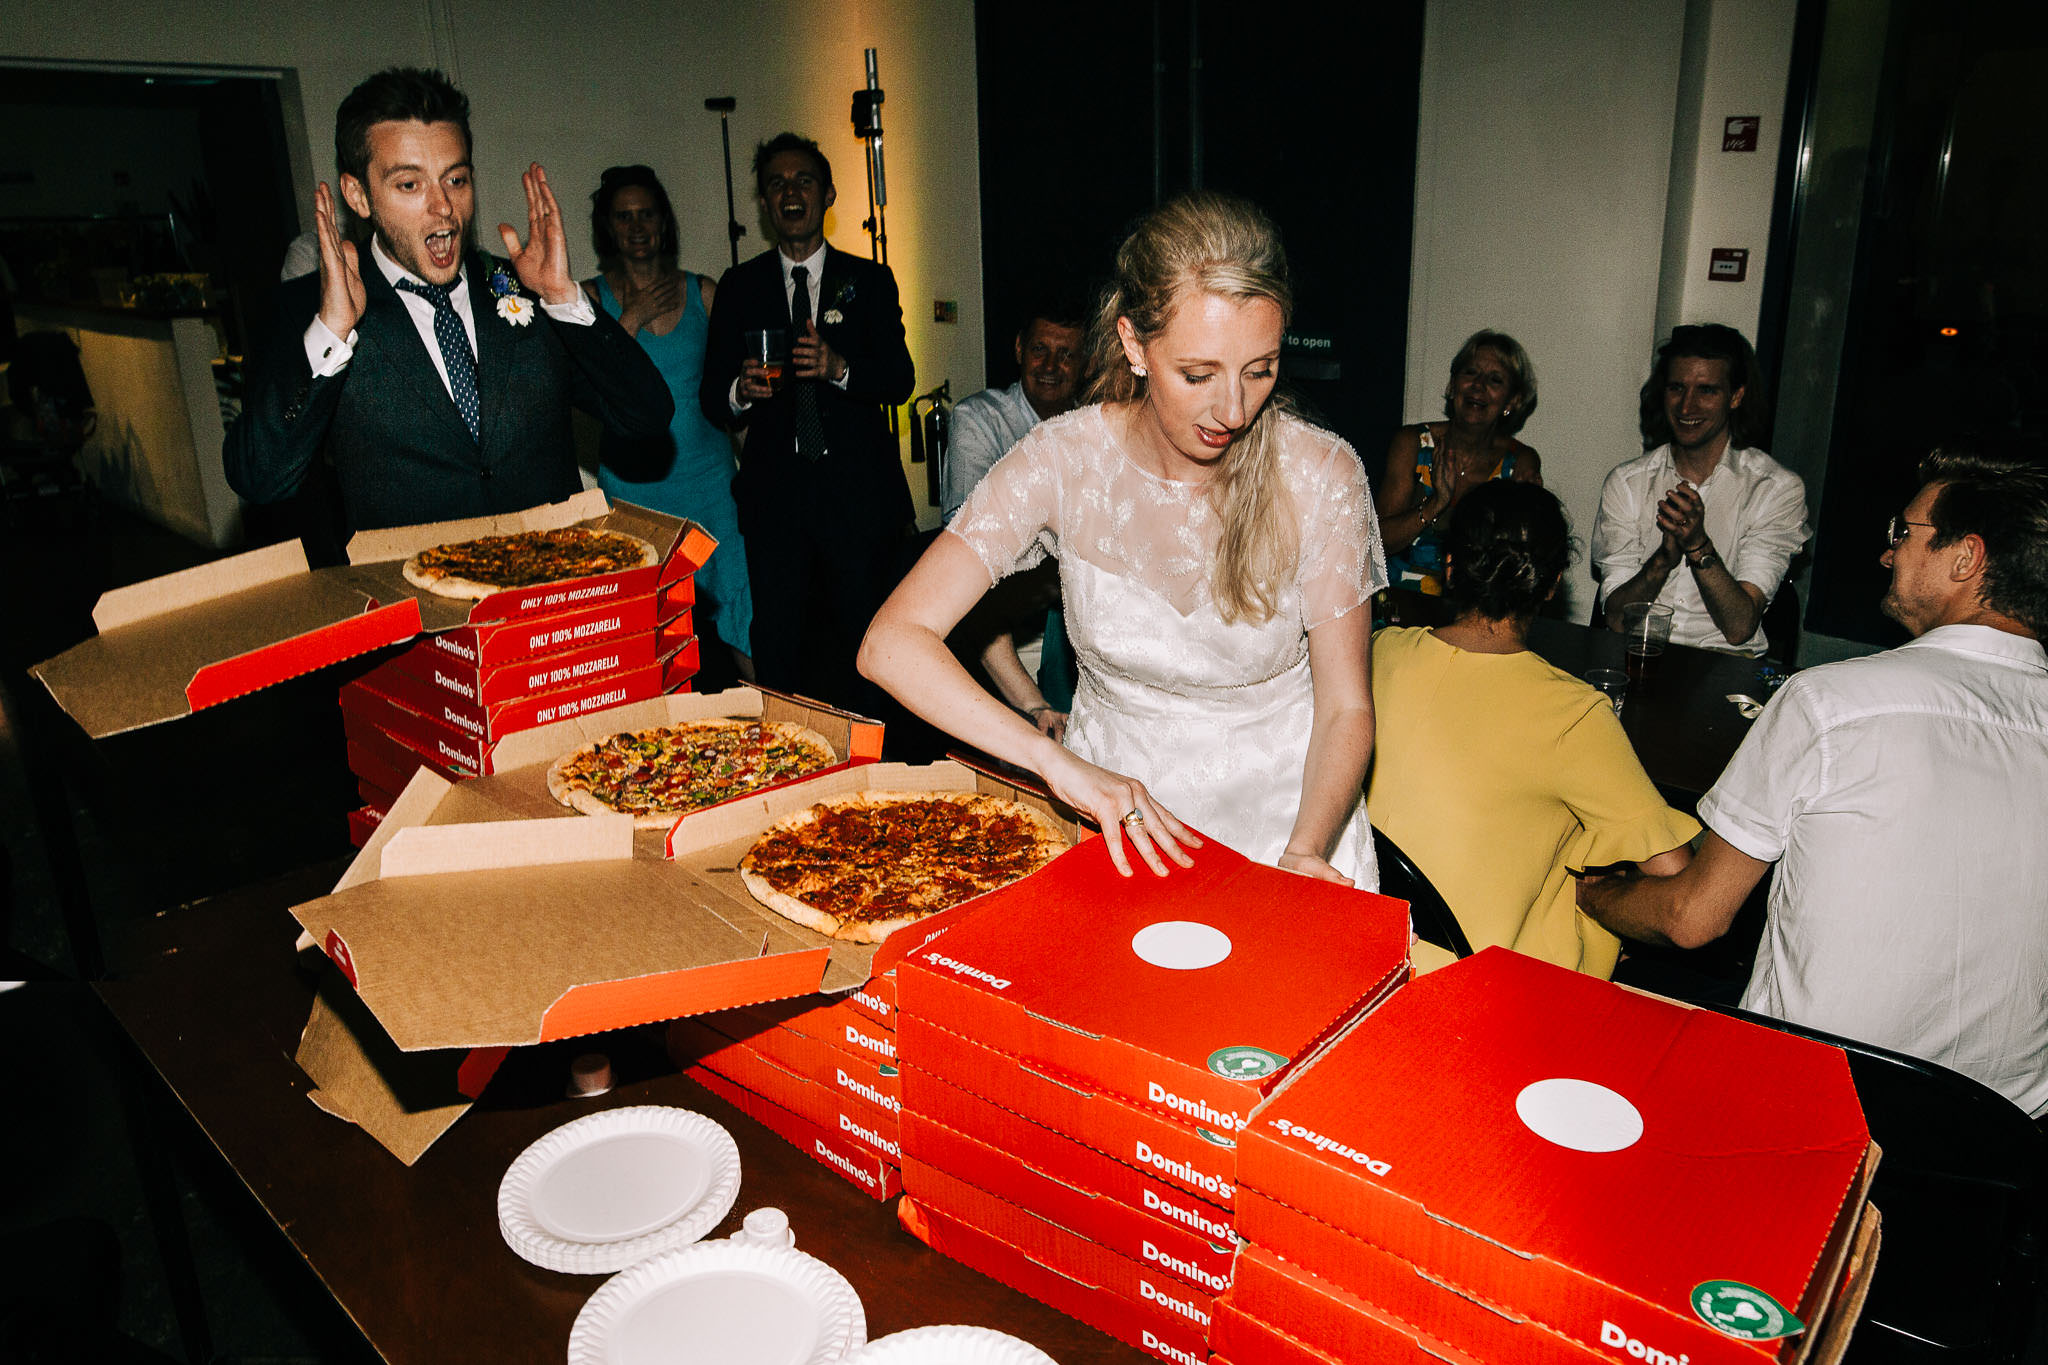 uk dominos pizza at weddings